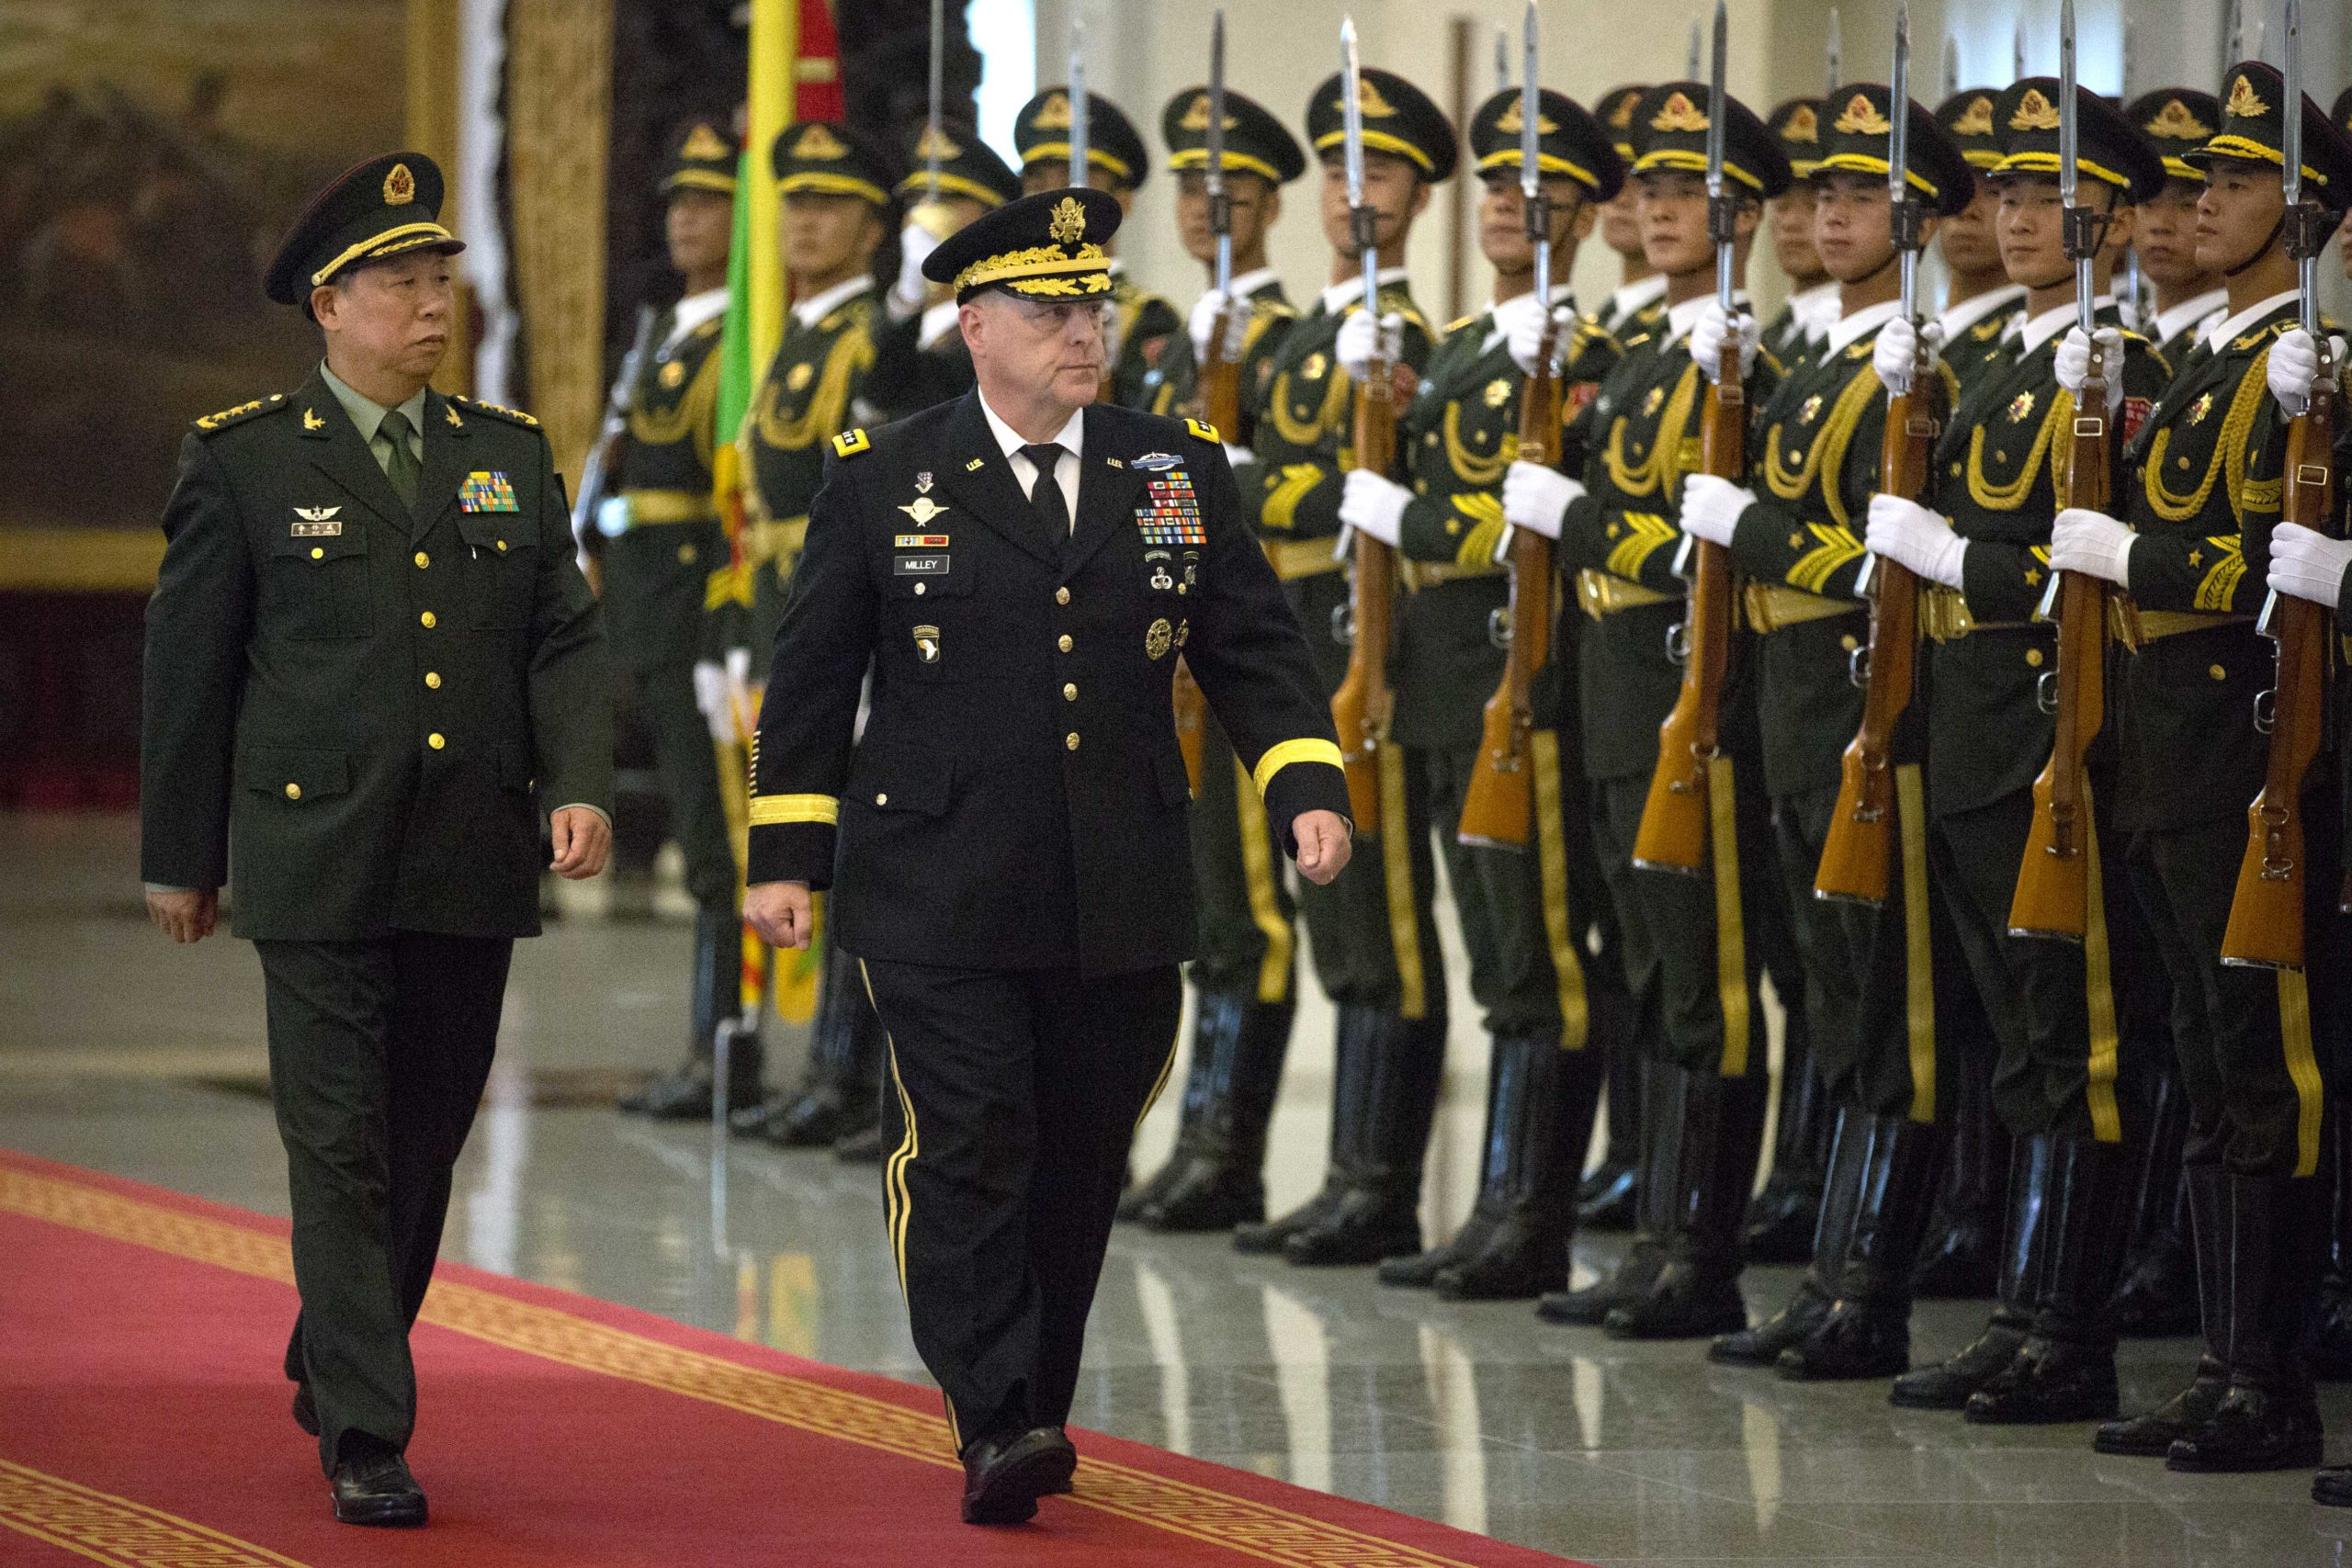 China's People's Liberation Army (PLA) General Li Zuocheng (L) and US Army Chief of Staff General Mark Milley (C) review an honour guard during a welcome ceremony at the Bayi Building in Beijing on August 16, 2016. / AFP / POOL / Mark Schiefelbein (Photo credit should read MARK SCHIEFELBEIN/AFP via Getty Images)